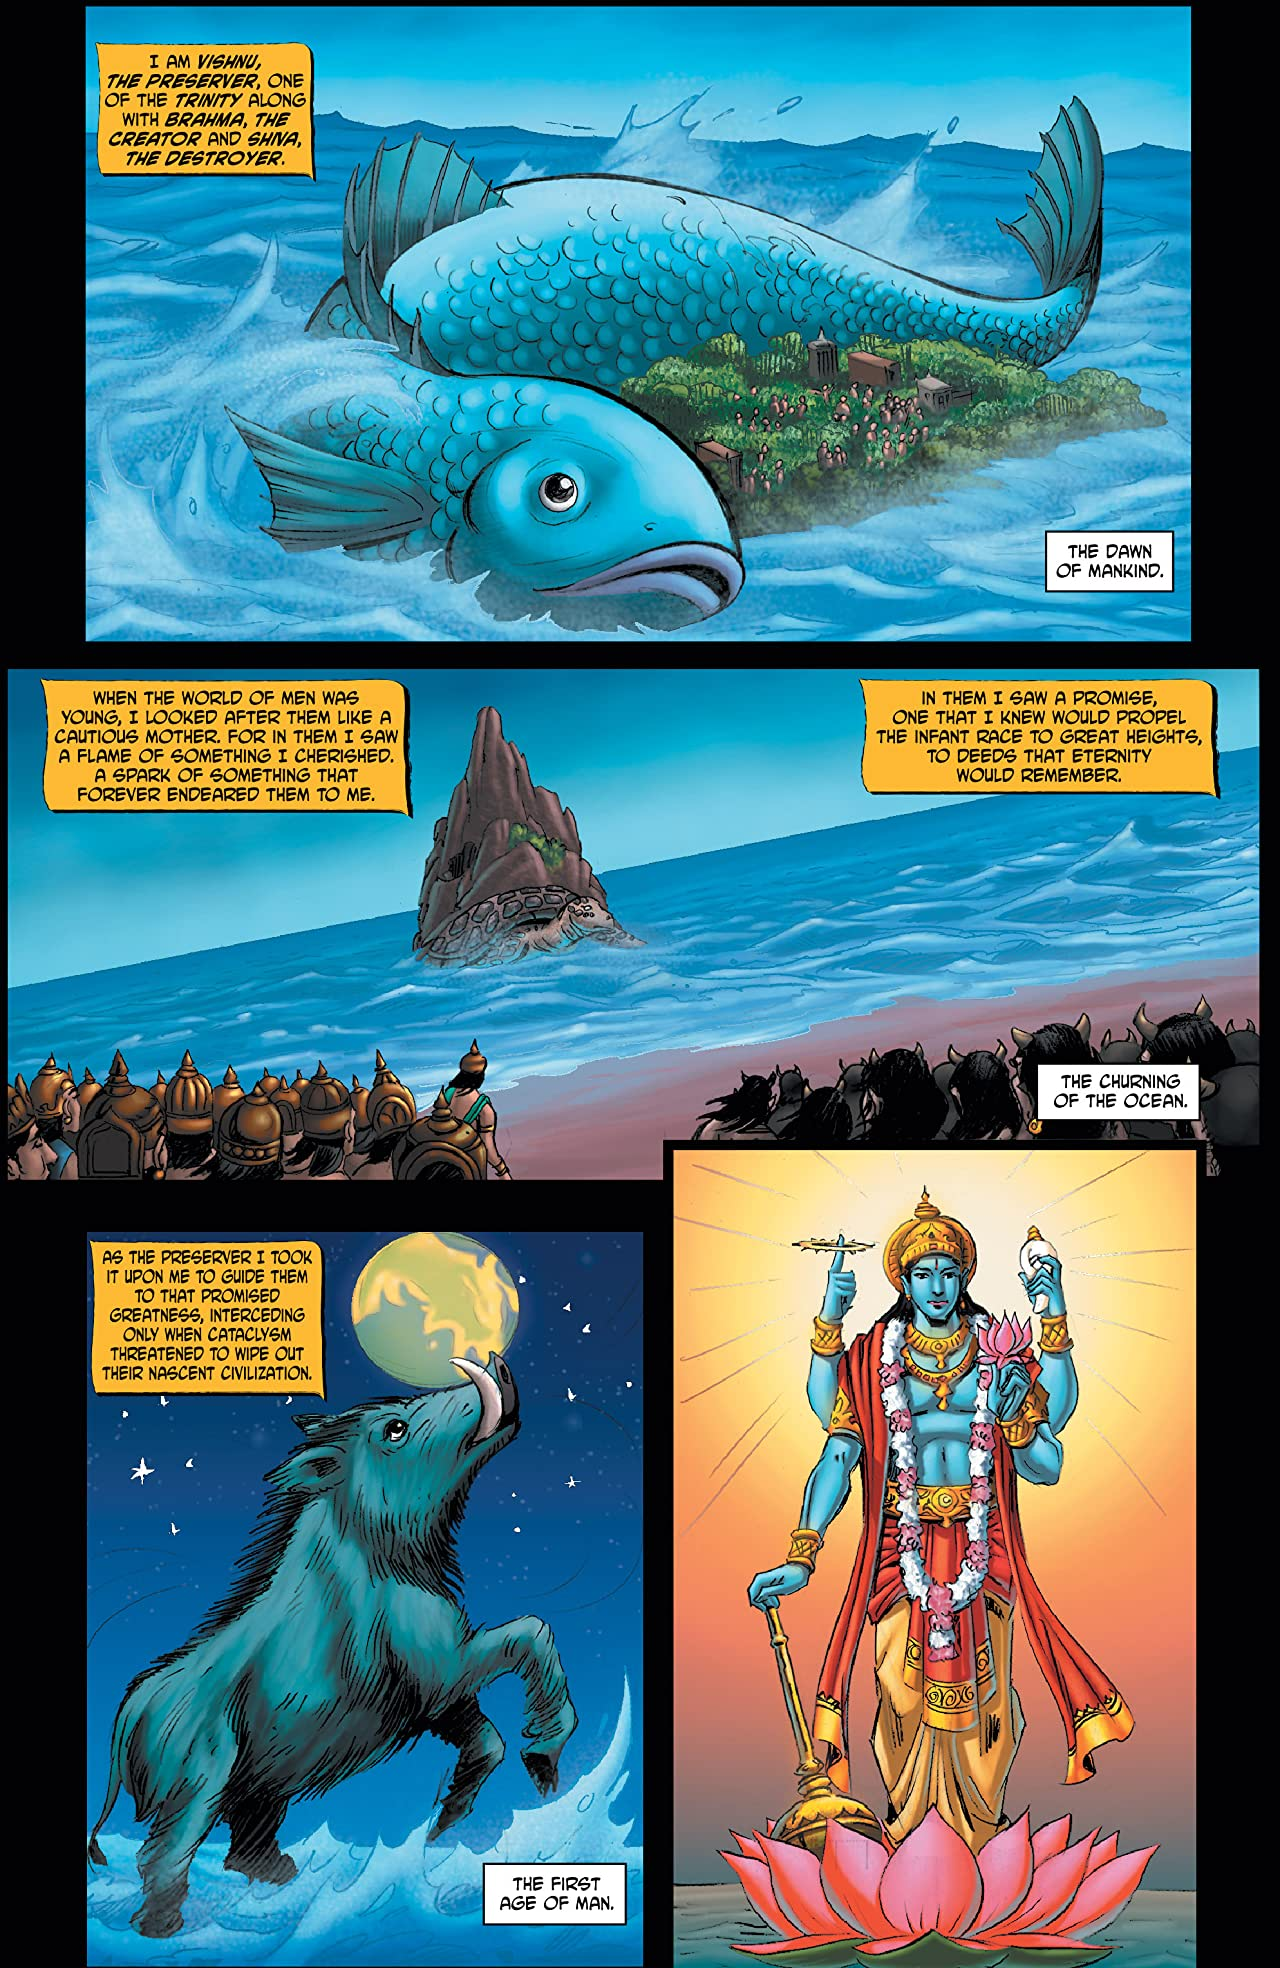 Myths of India: Vishnu